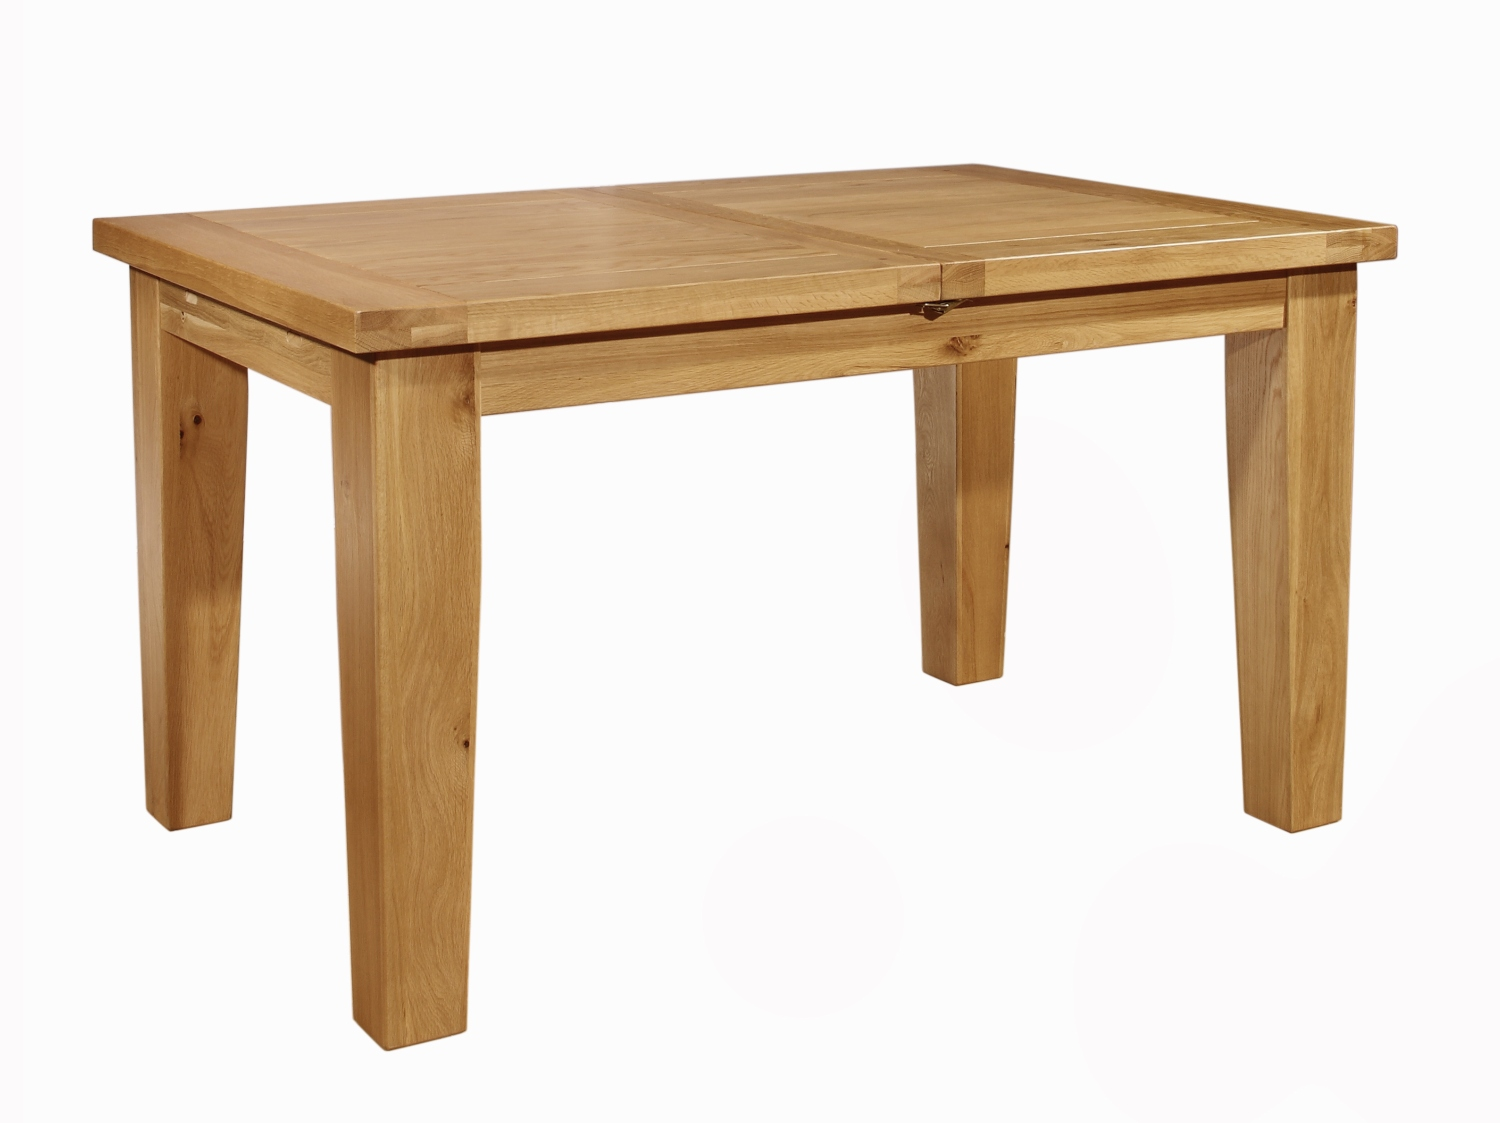 Panama Solid Oak Furniture Extra Large Extending Dining Table EBay